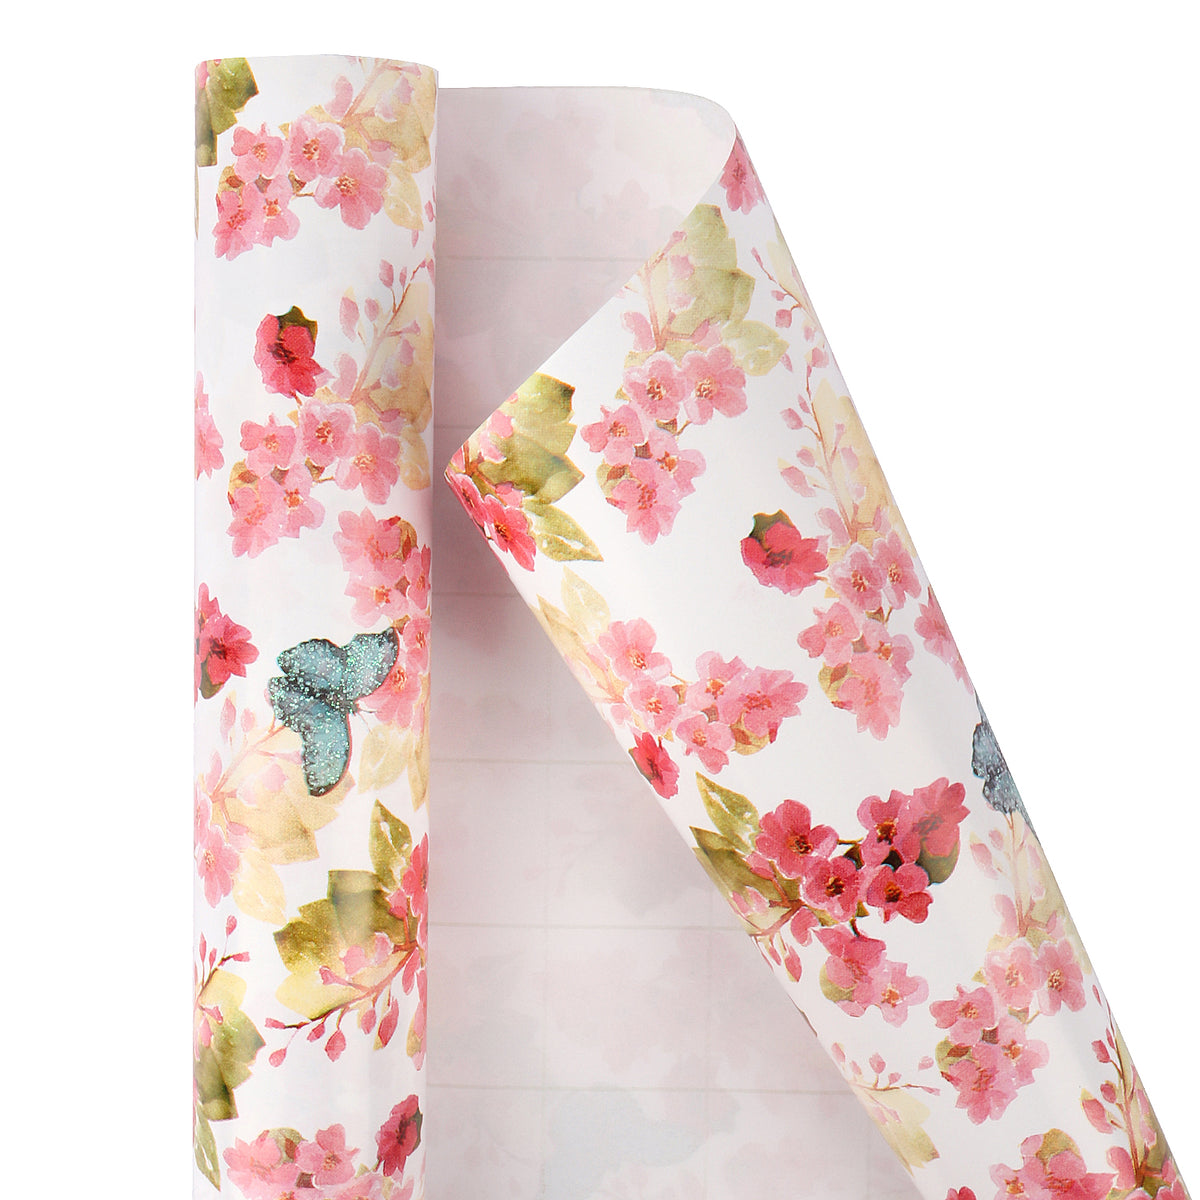 Wrapaholic-3 Different-Floral- and-Butterfly-Design-Wrapping-Paper -Roll-(14.4 sq. ft.TTL.)-2